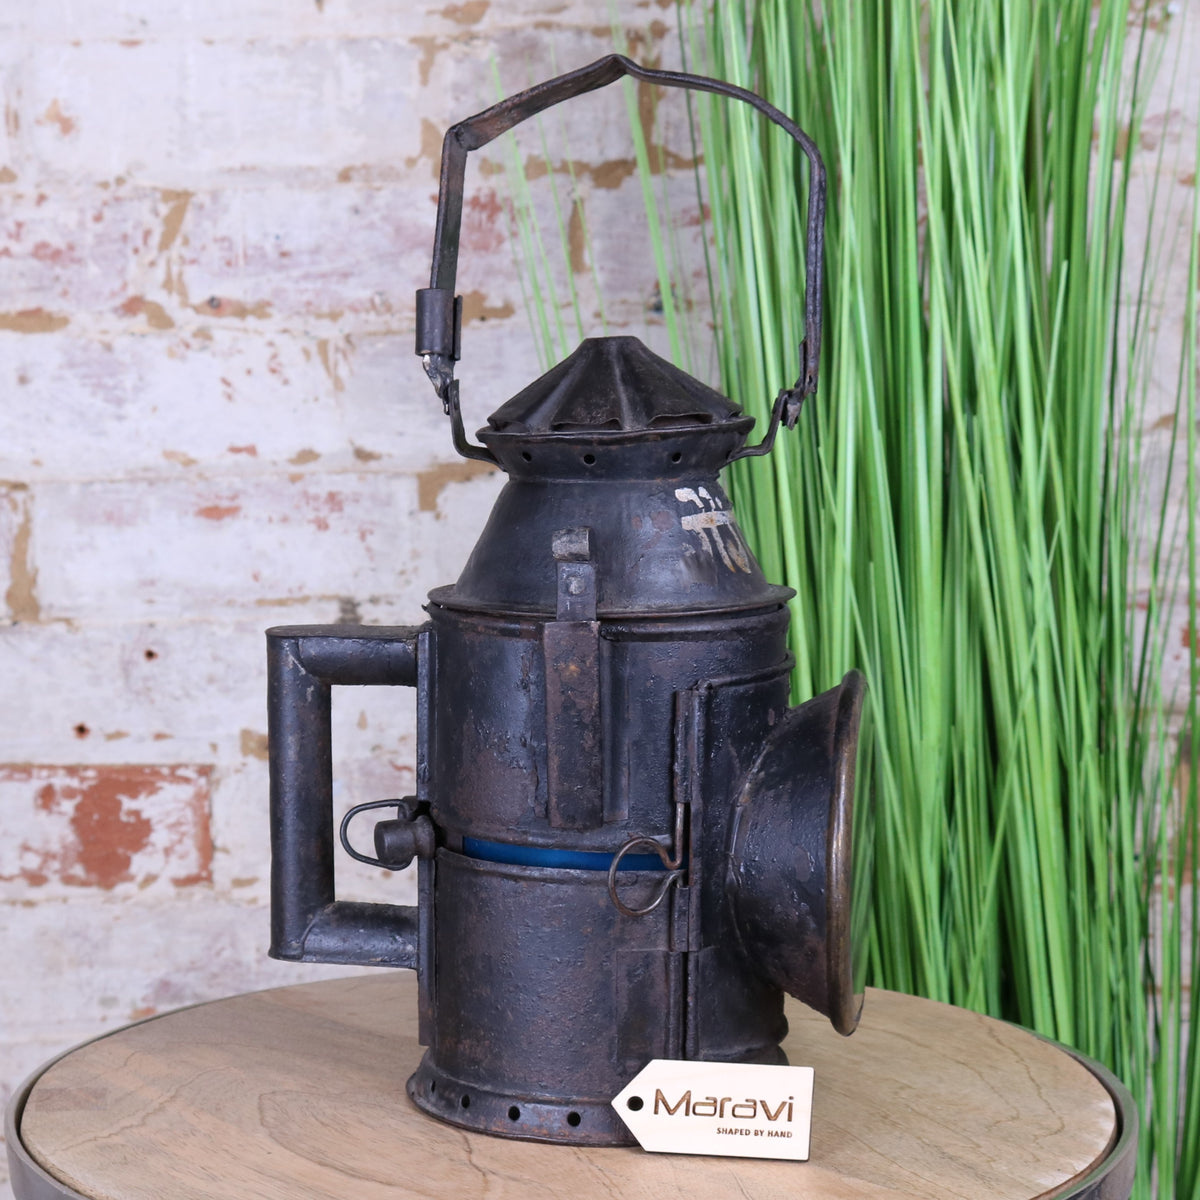 Vintage Indian Railway Lantern